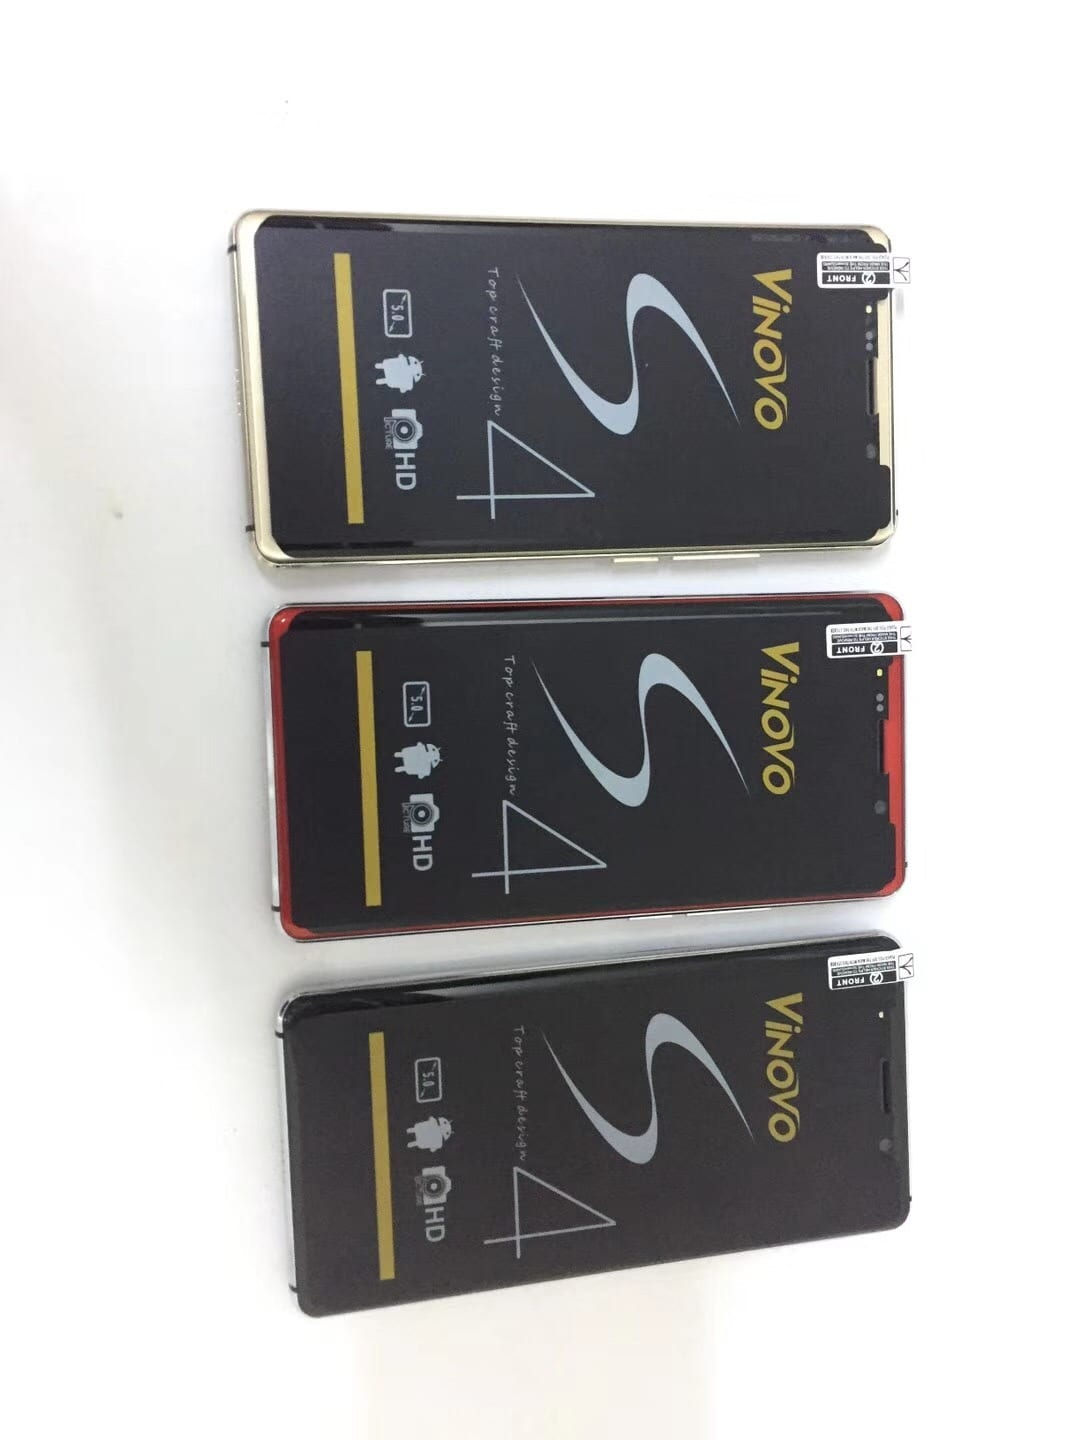 OEM Smart Phone S9 S9 Plus Smartphone WCDMA Unlocked Celulares